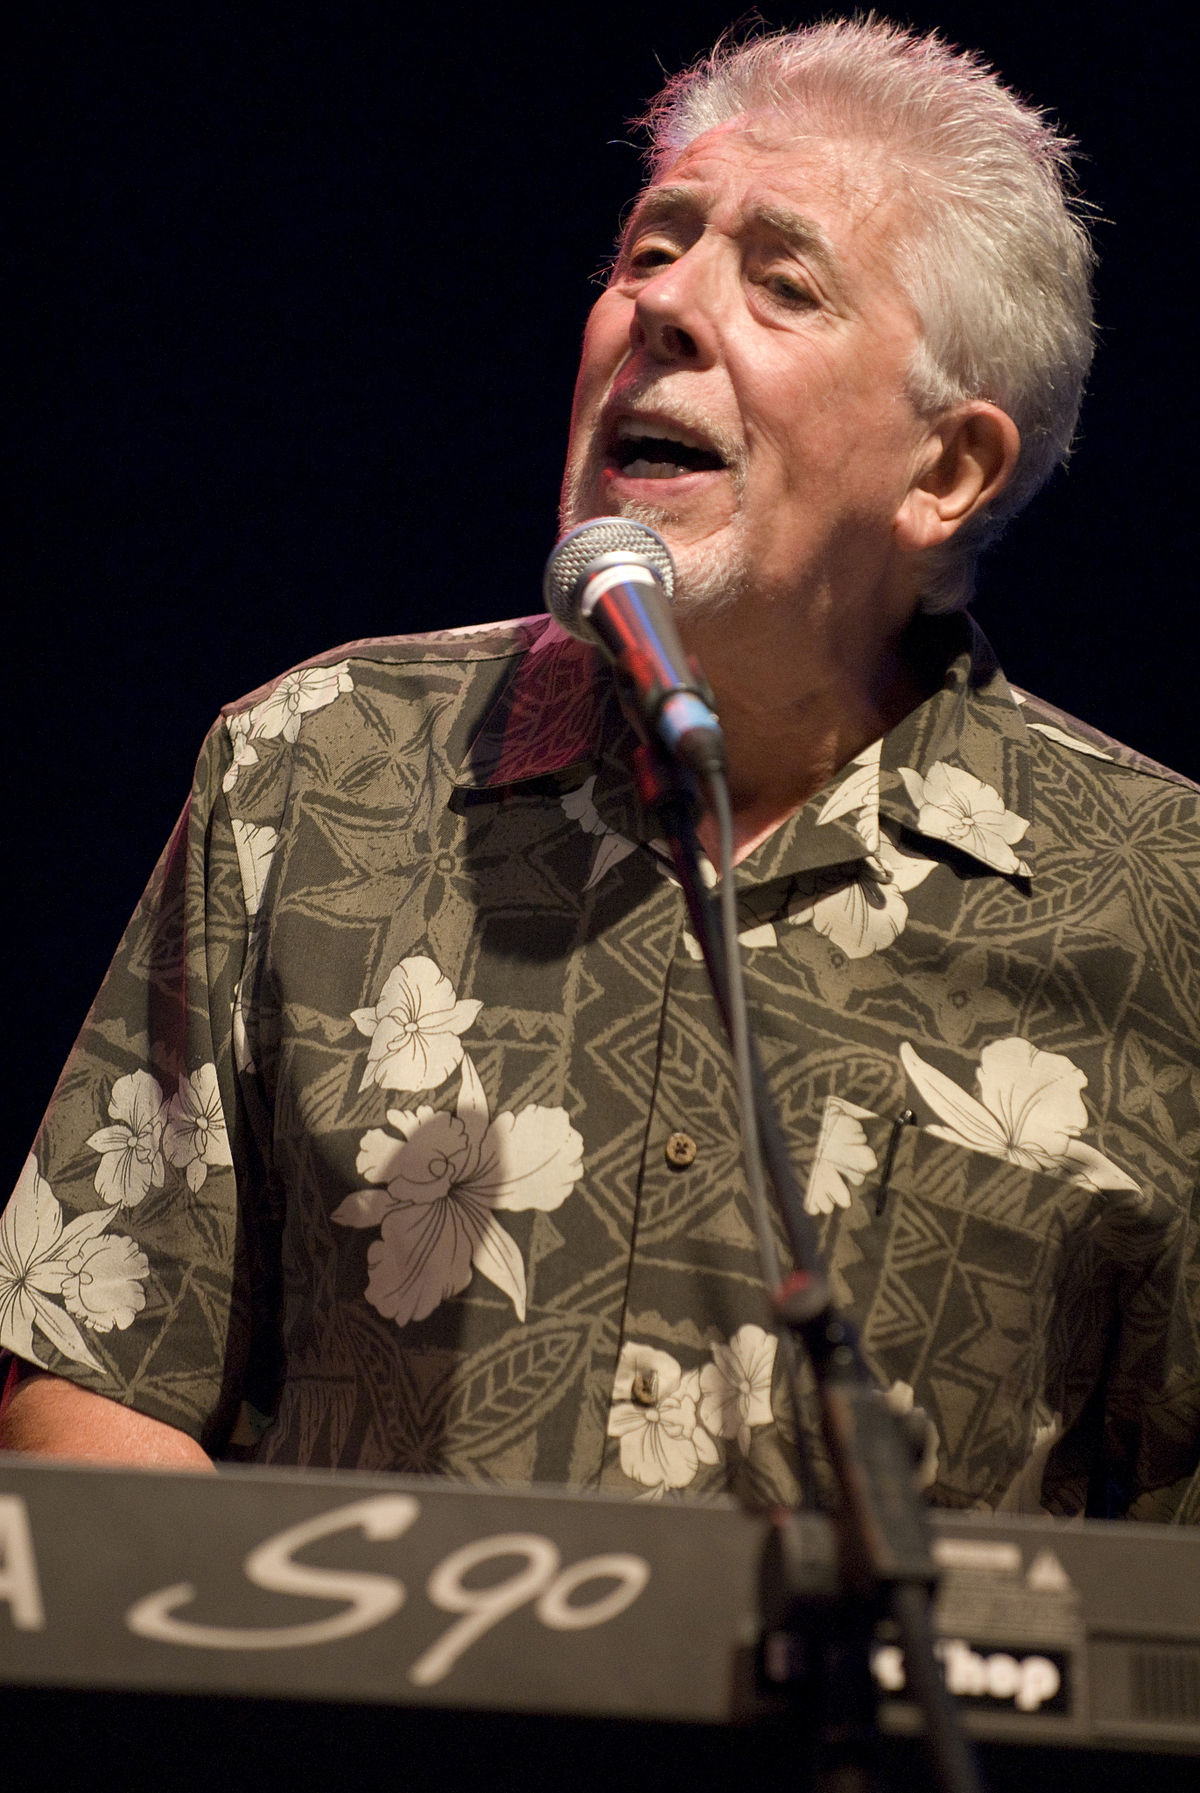 John mayall simple english wikipedia the free encyclopedia publicscrutiny Images